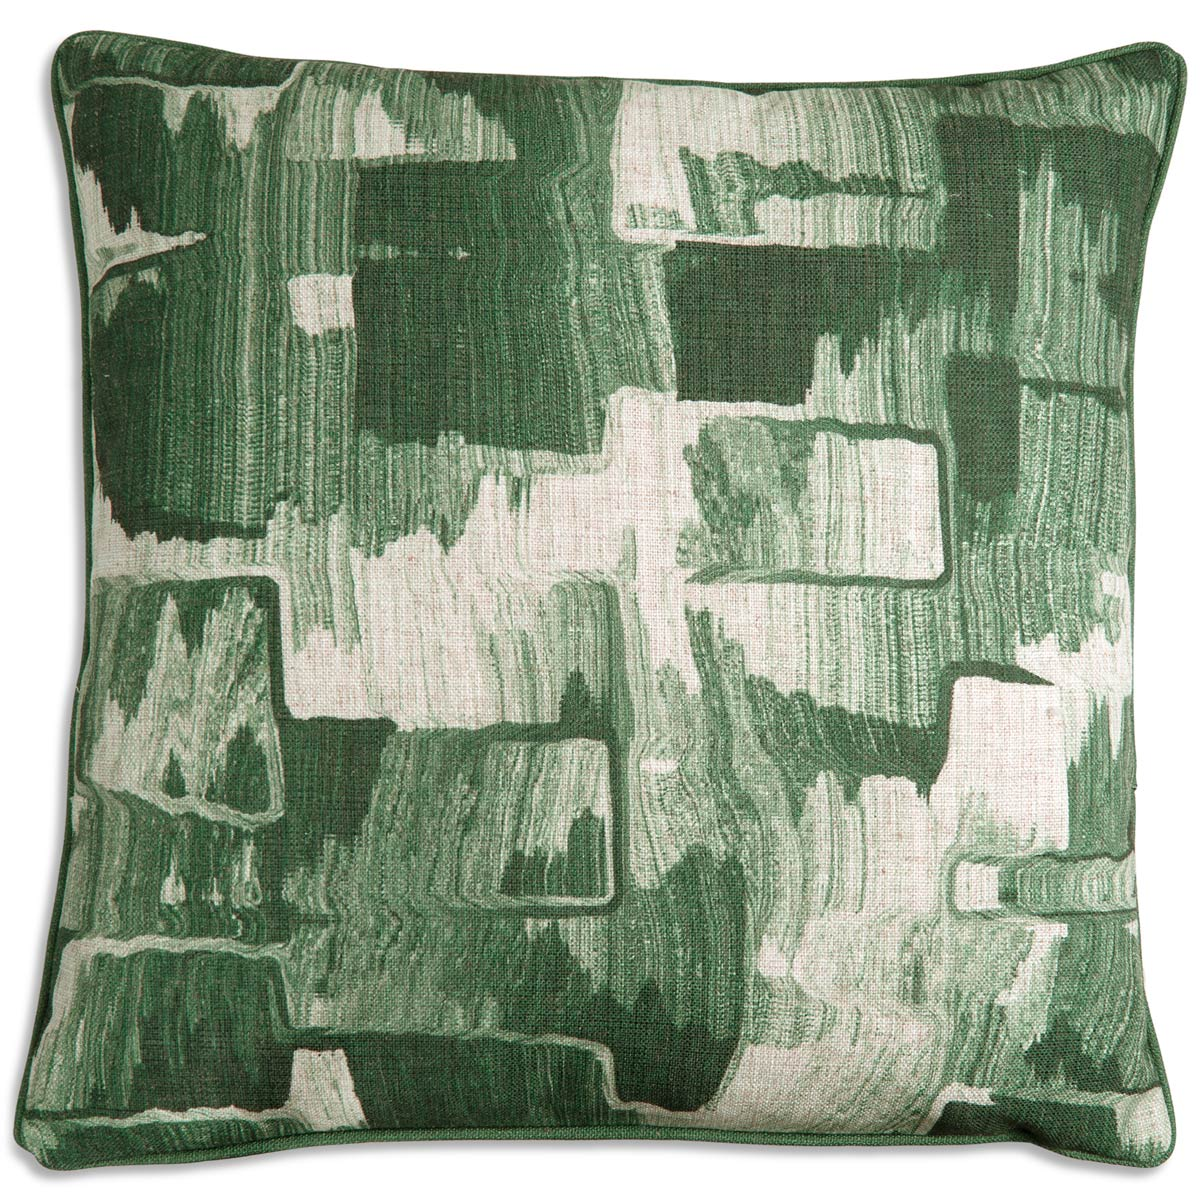 Denim Abstract Pillow in Hunter Green - ModShop1.com